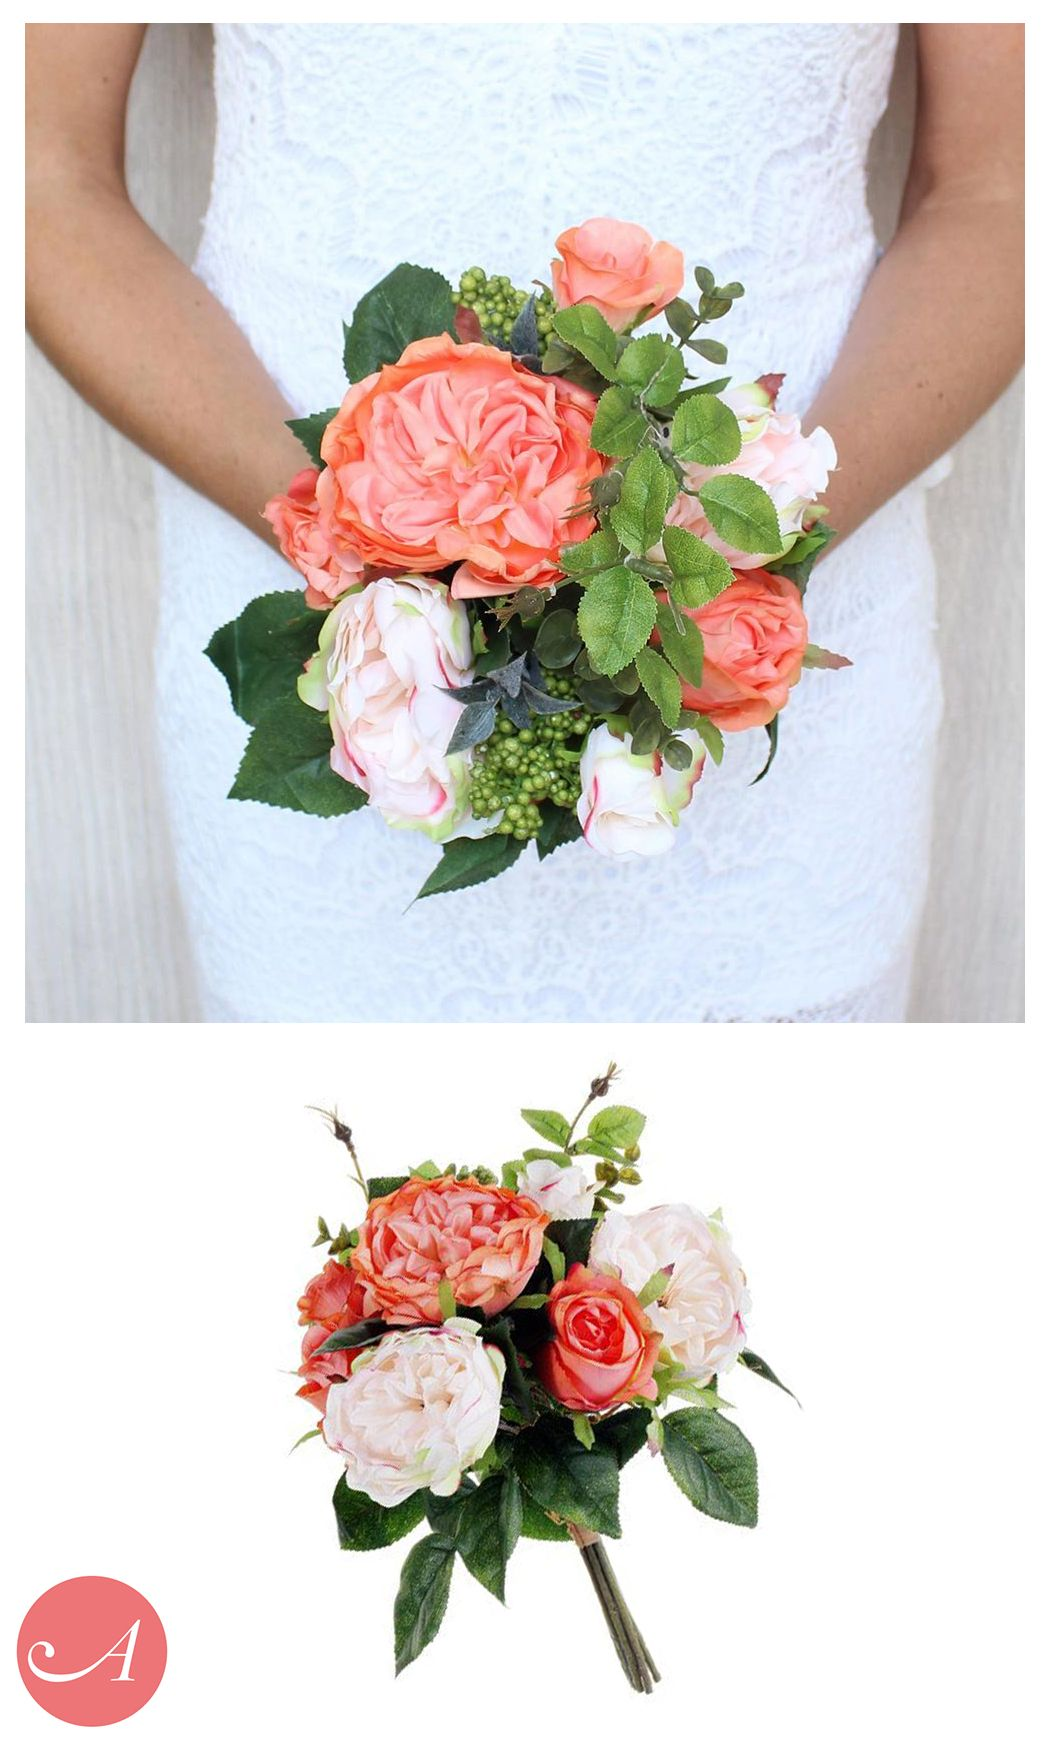 Bouquets Under 25 At Afloral Com Pre Made Silk Flower Bouquets Look Better Than Fresh A Artificial Wedding Bouquets Wedding Bouquets Wedding Bouquets Online